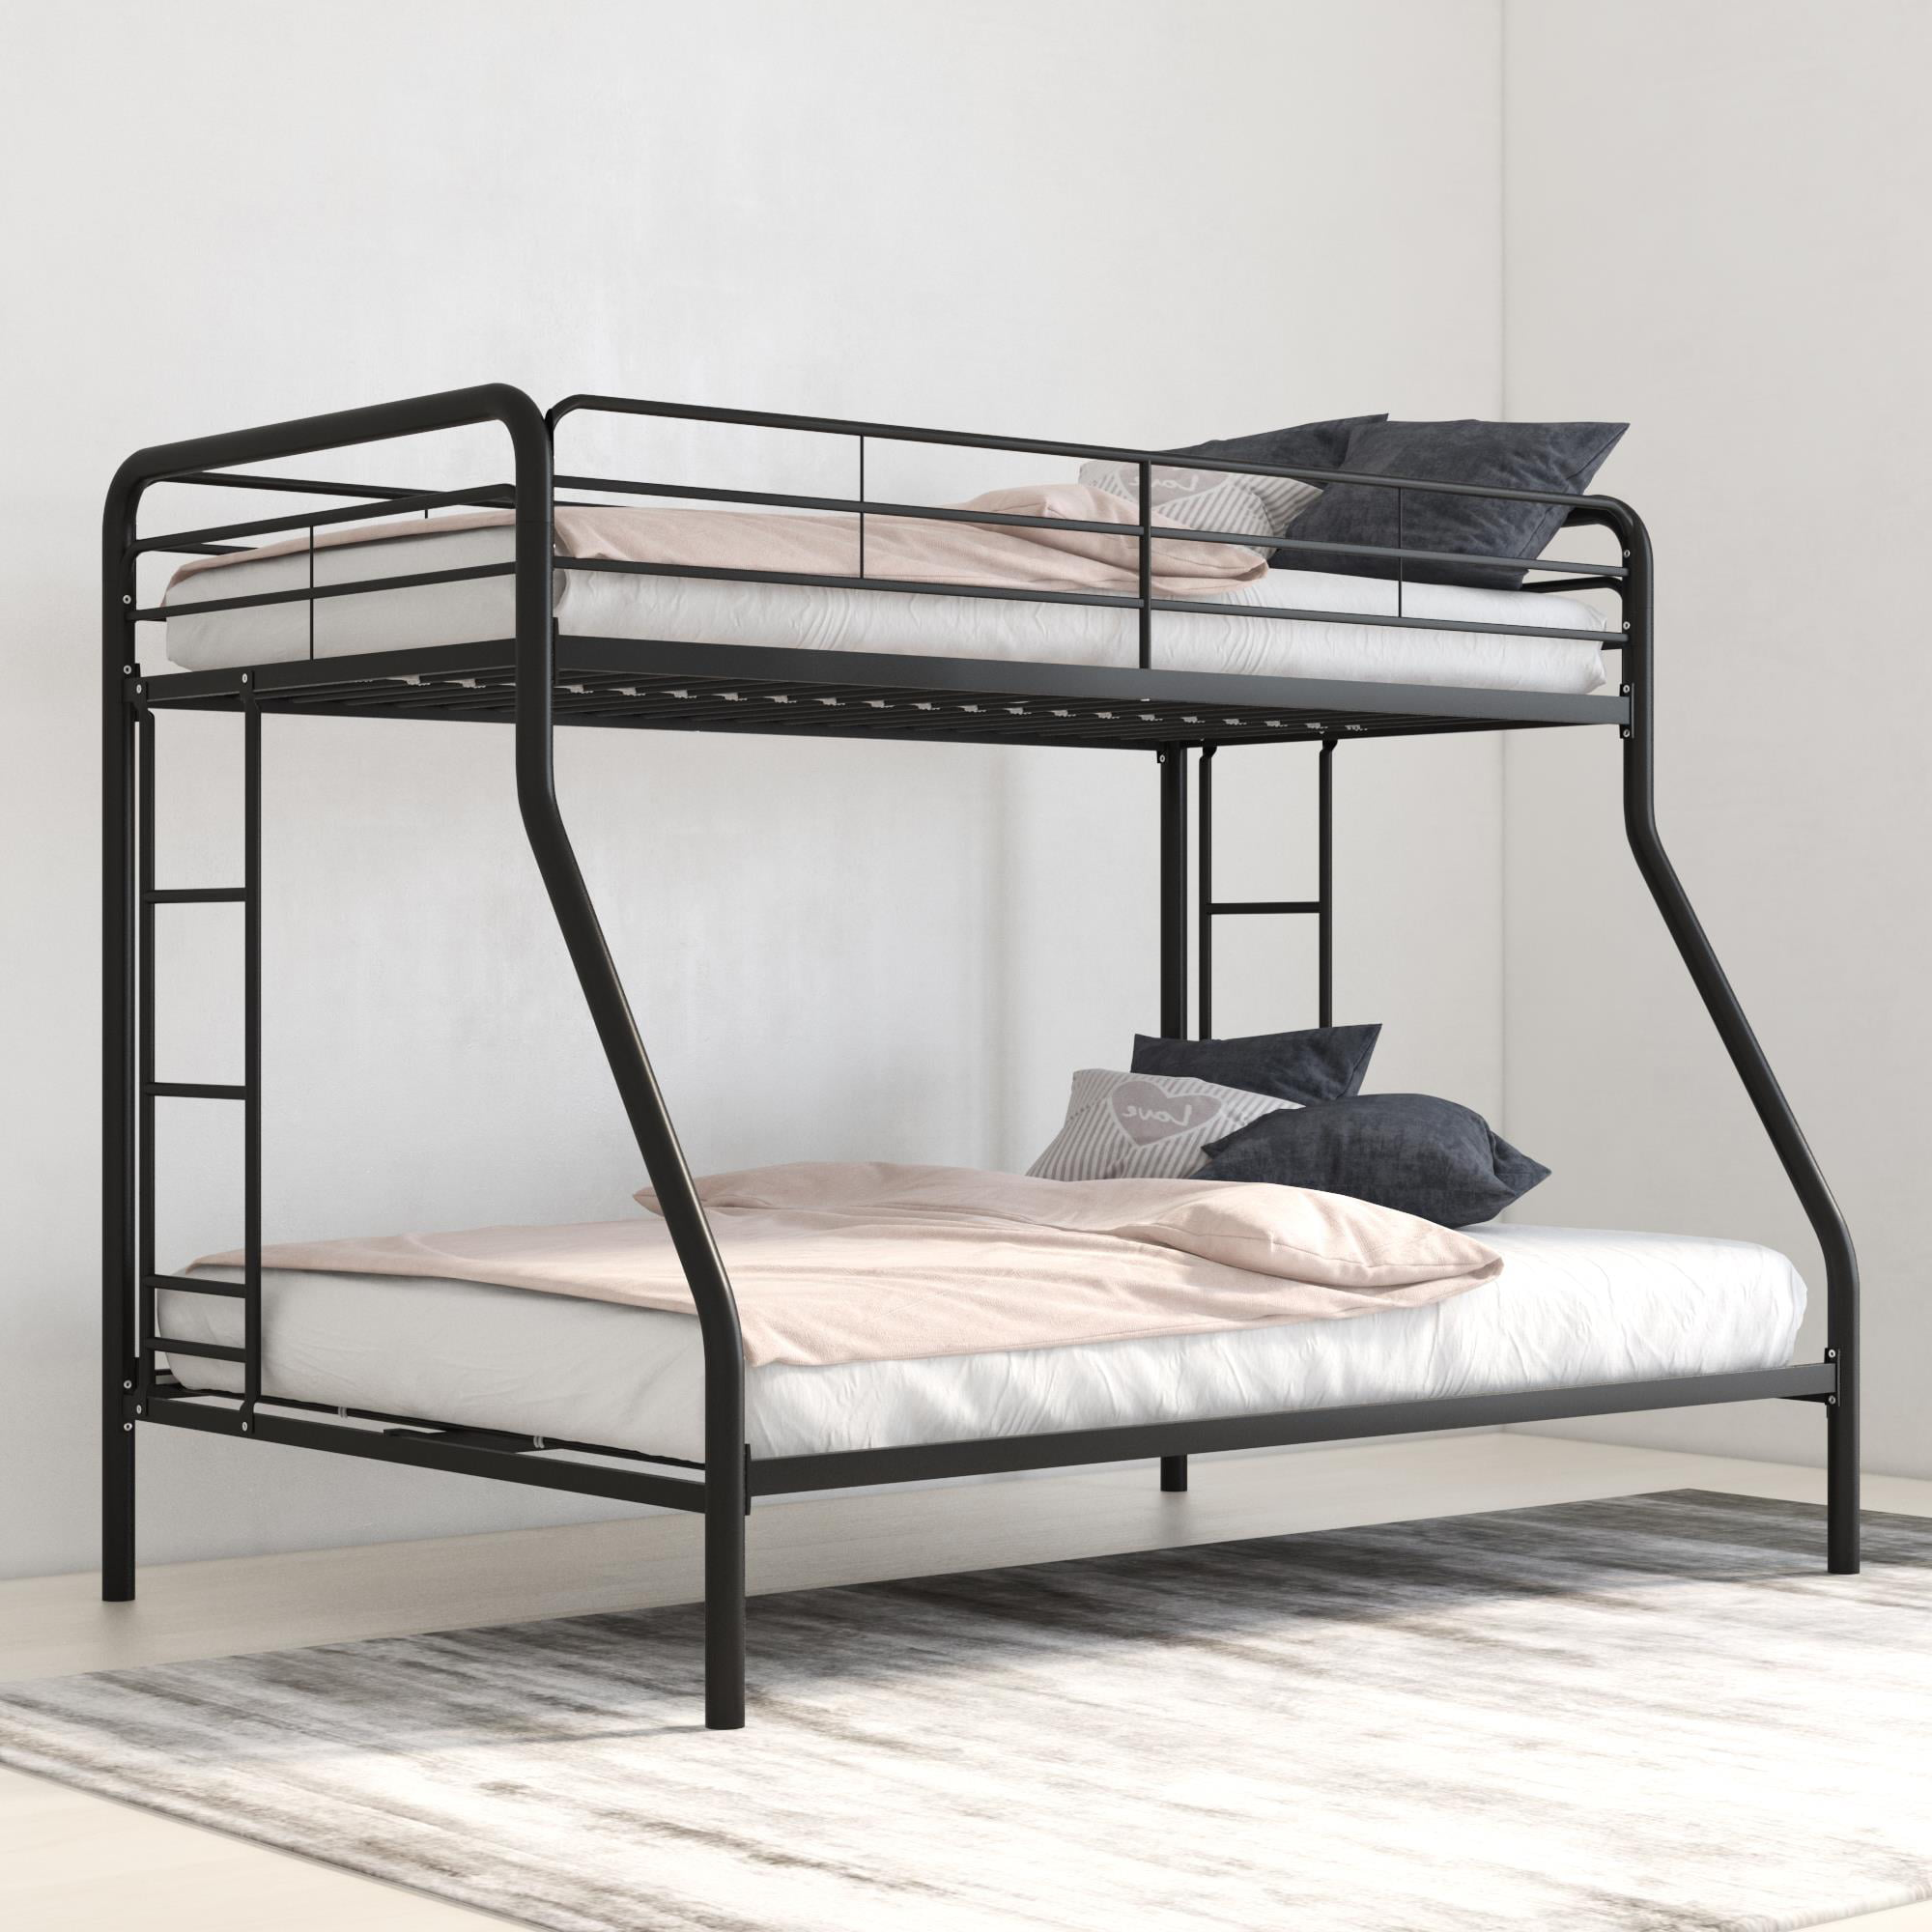 Dhp Twin Over Full Metal Bunk Bed Frame Multiple Colors Walmart Com Walmart Com